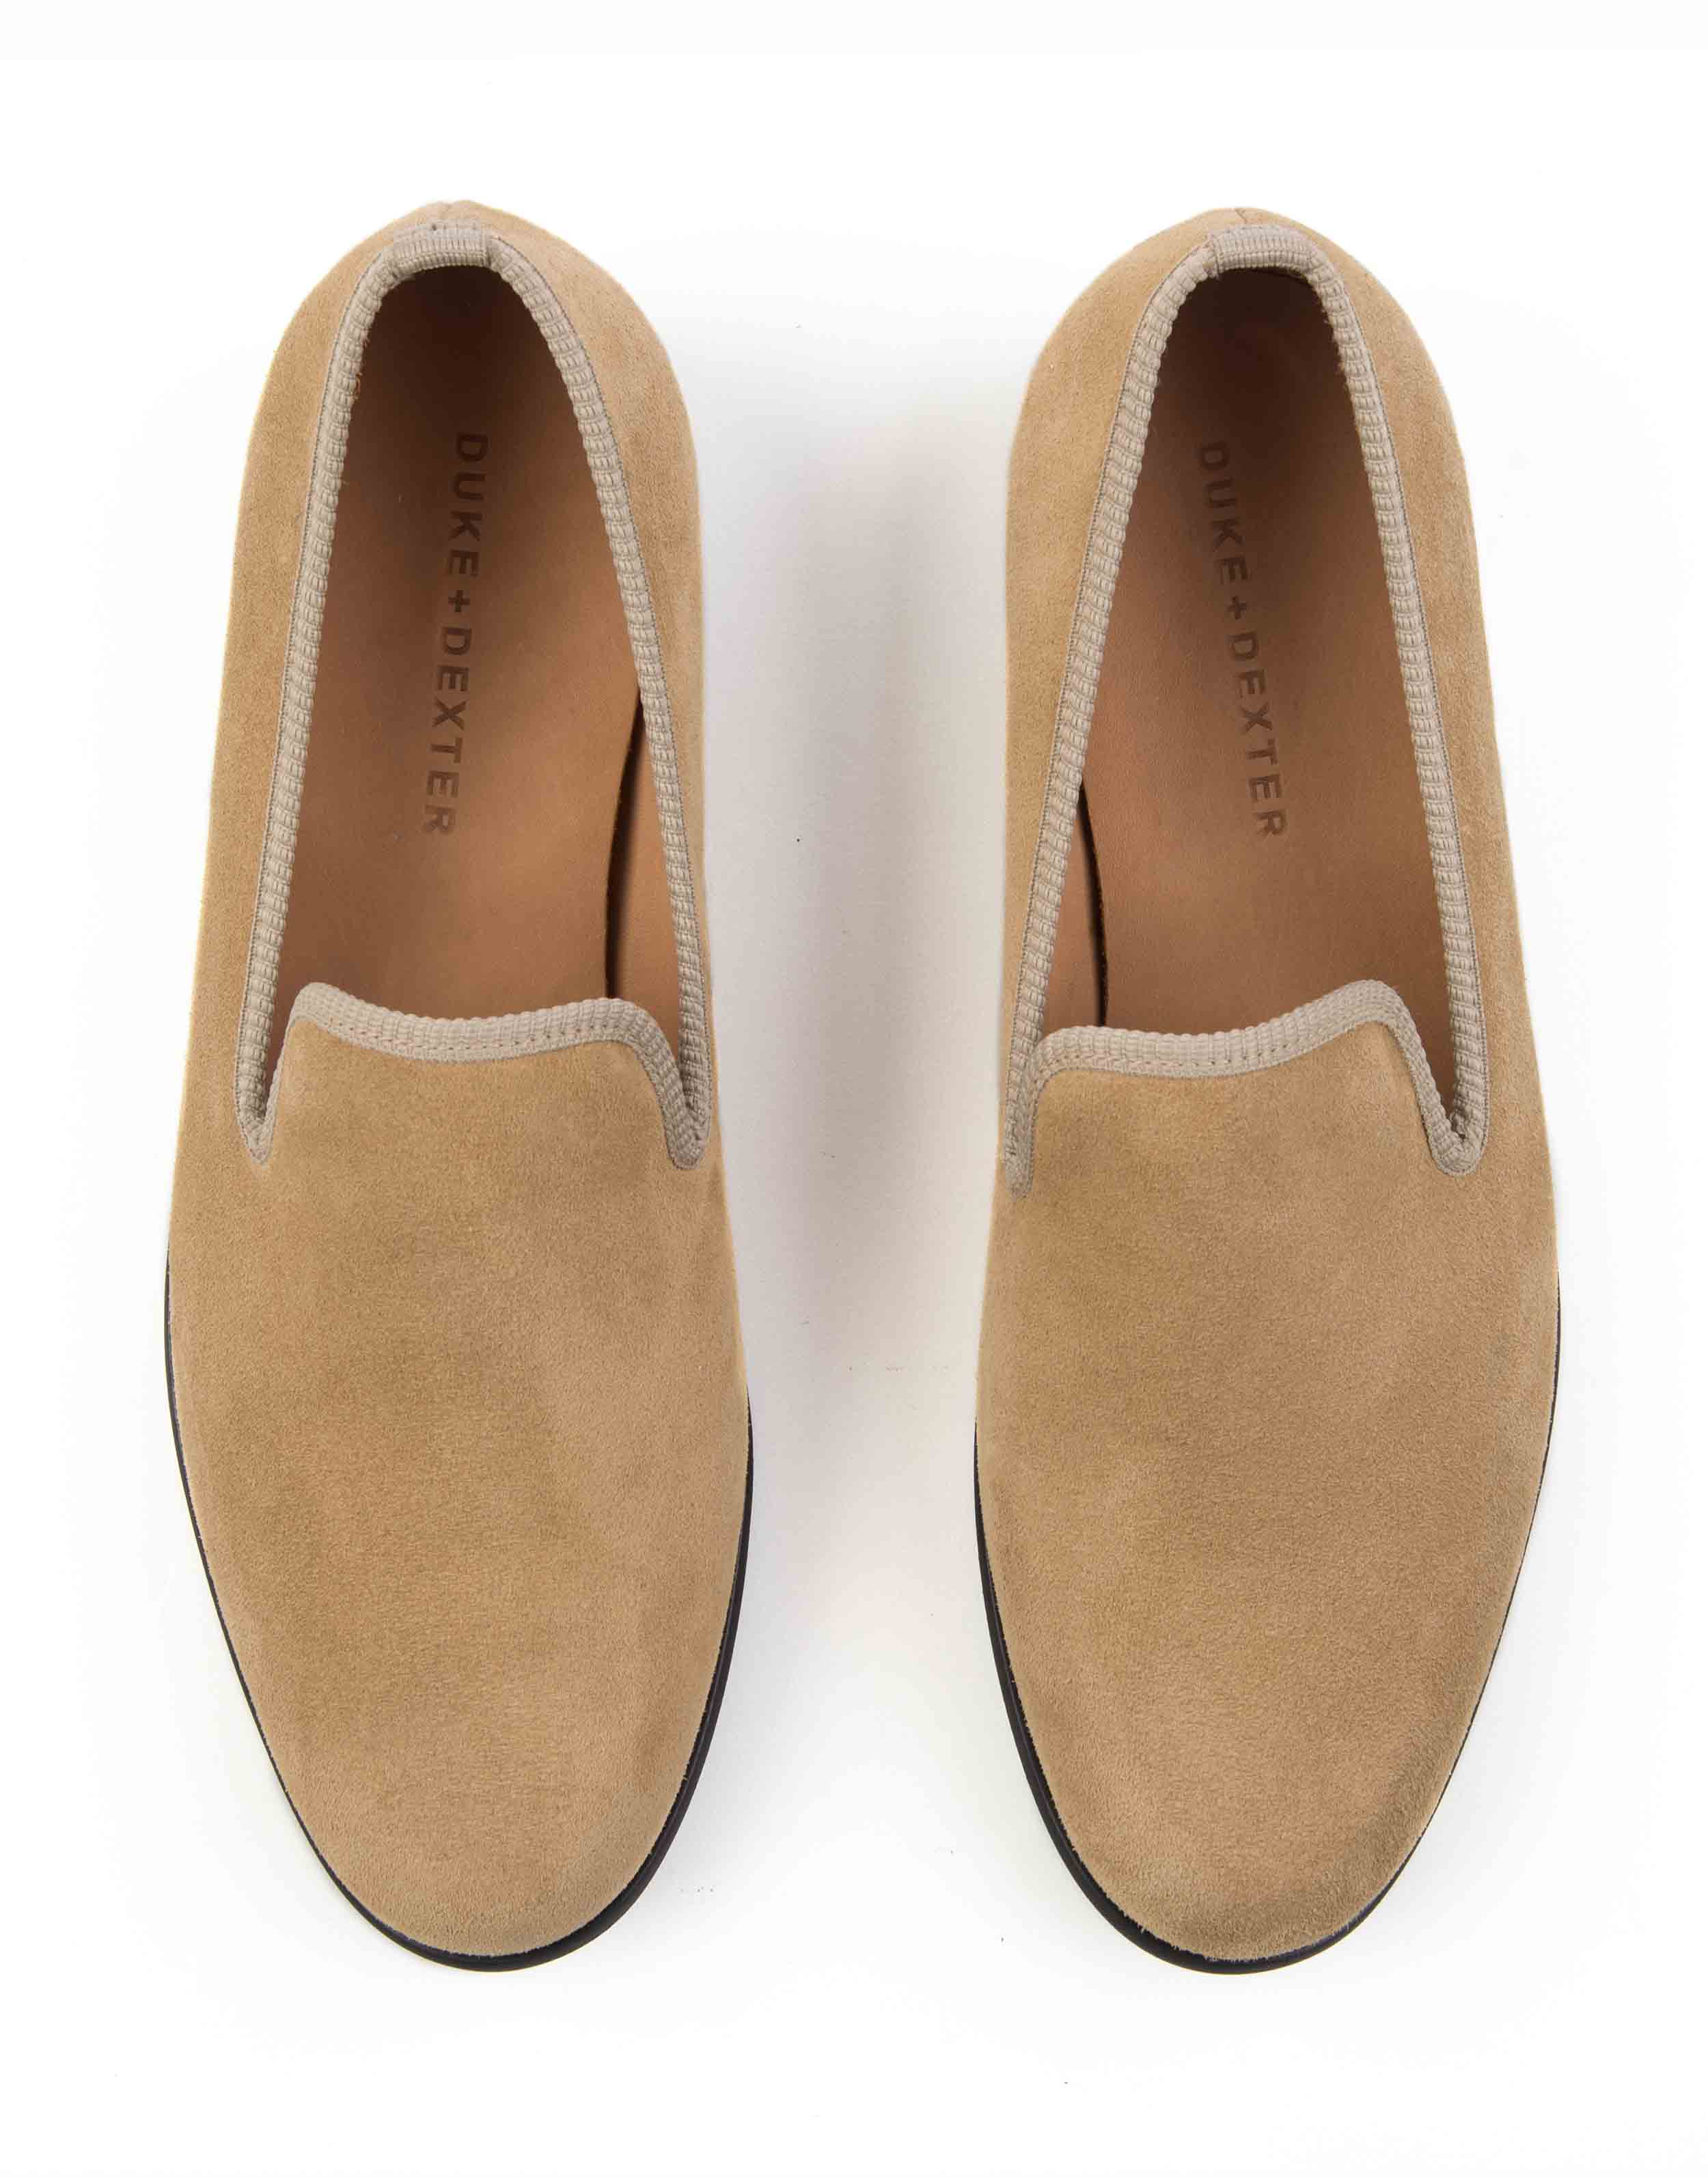 LIGHT TAN SUEDE LOAFERS4